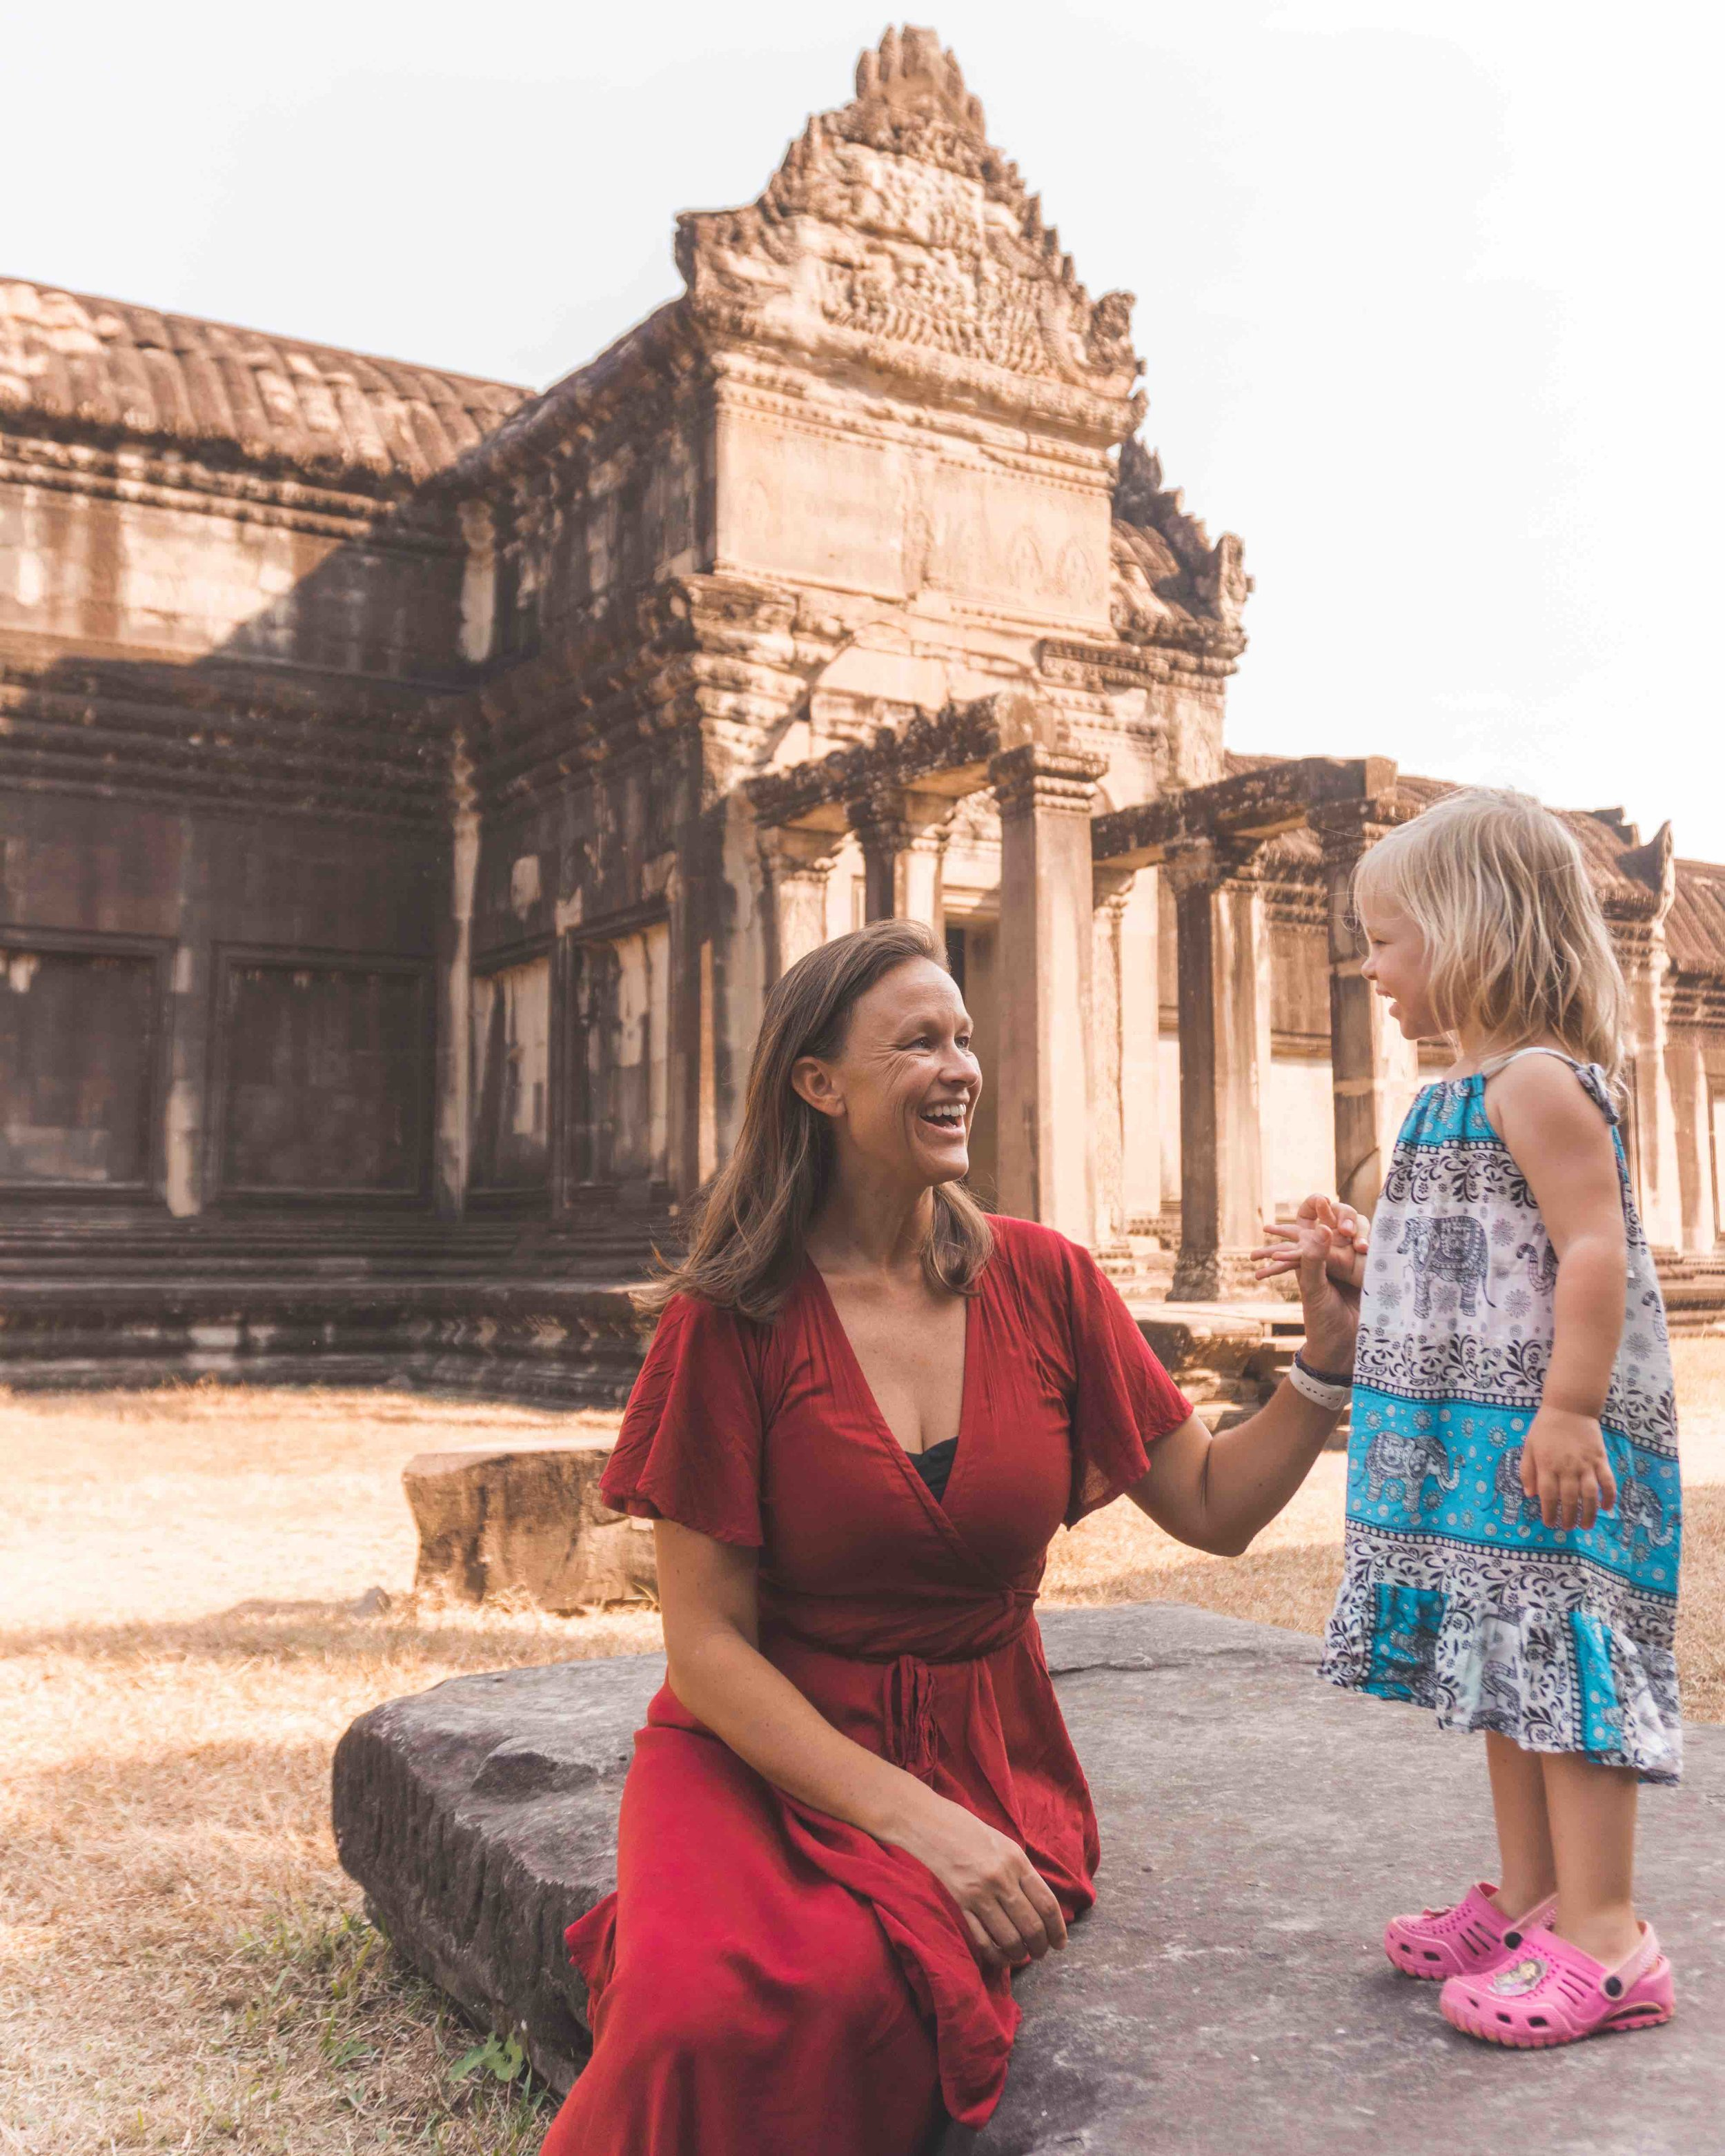 Lifestyle_family_mom_daughter_cambodia_temples_angkor wat.jpg